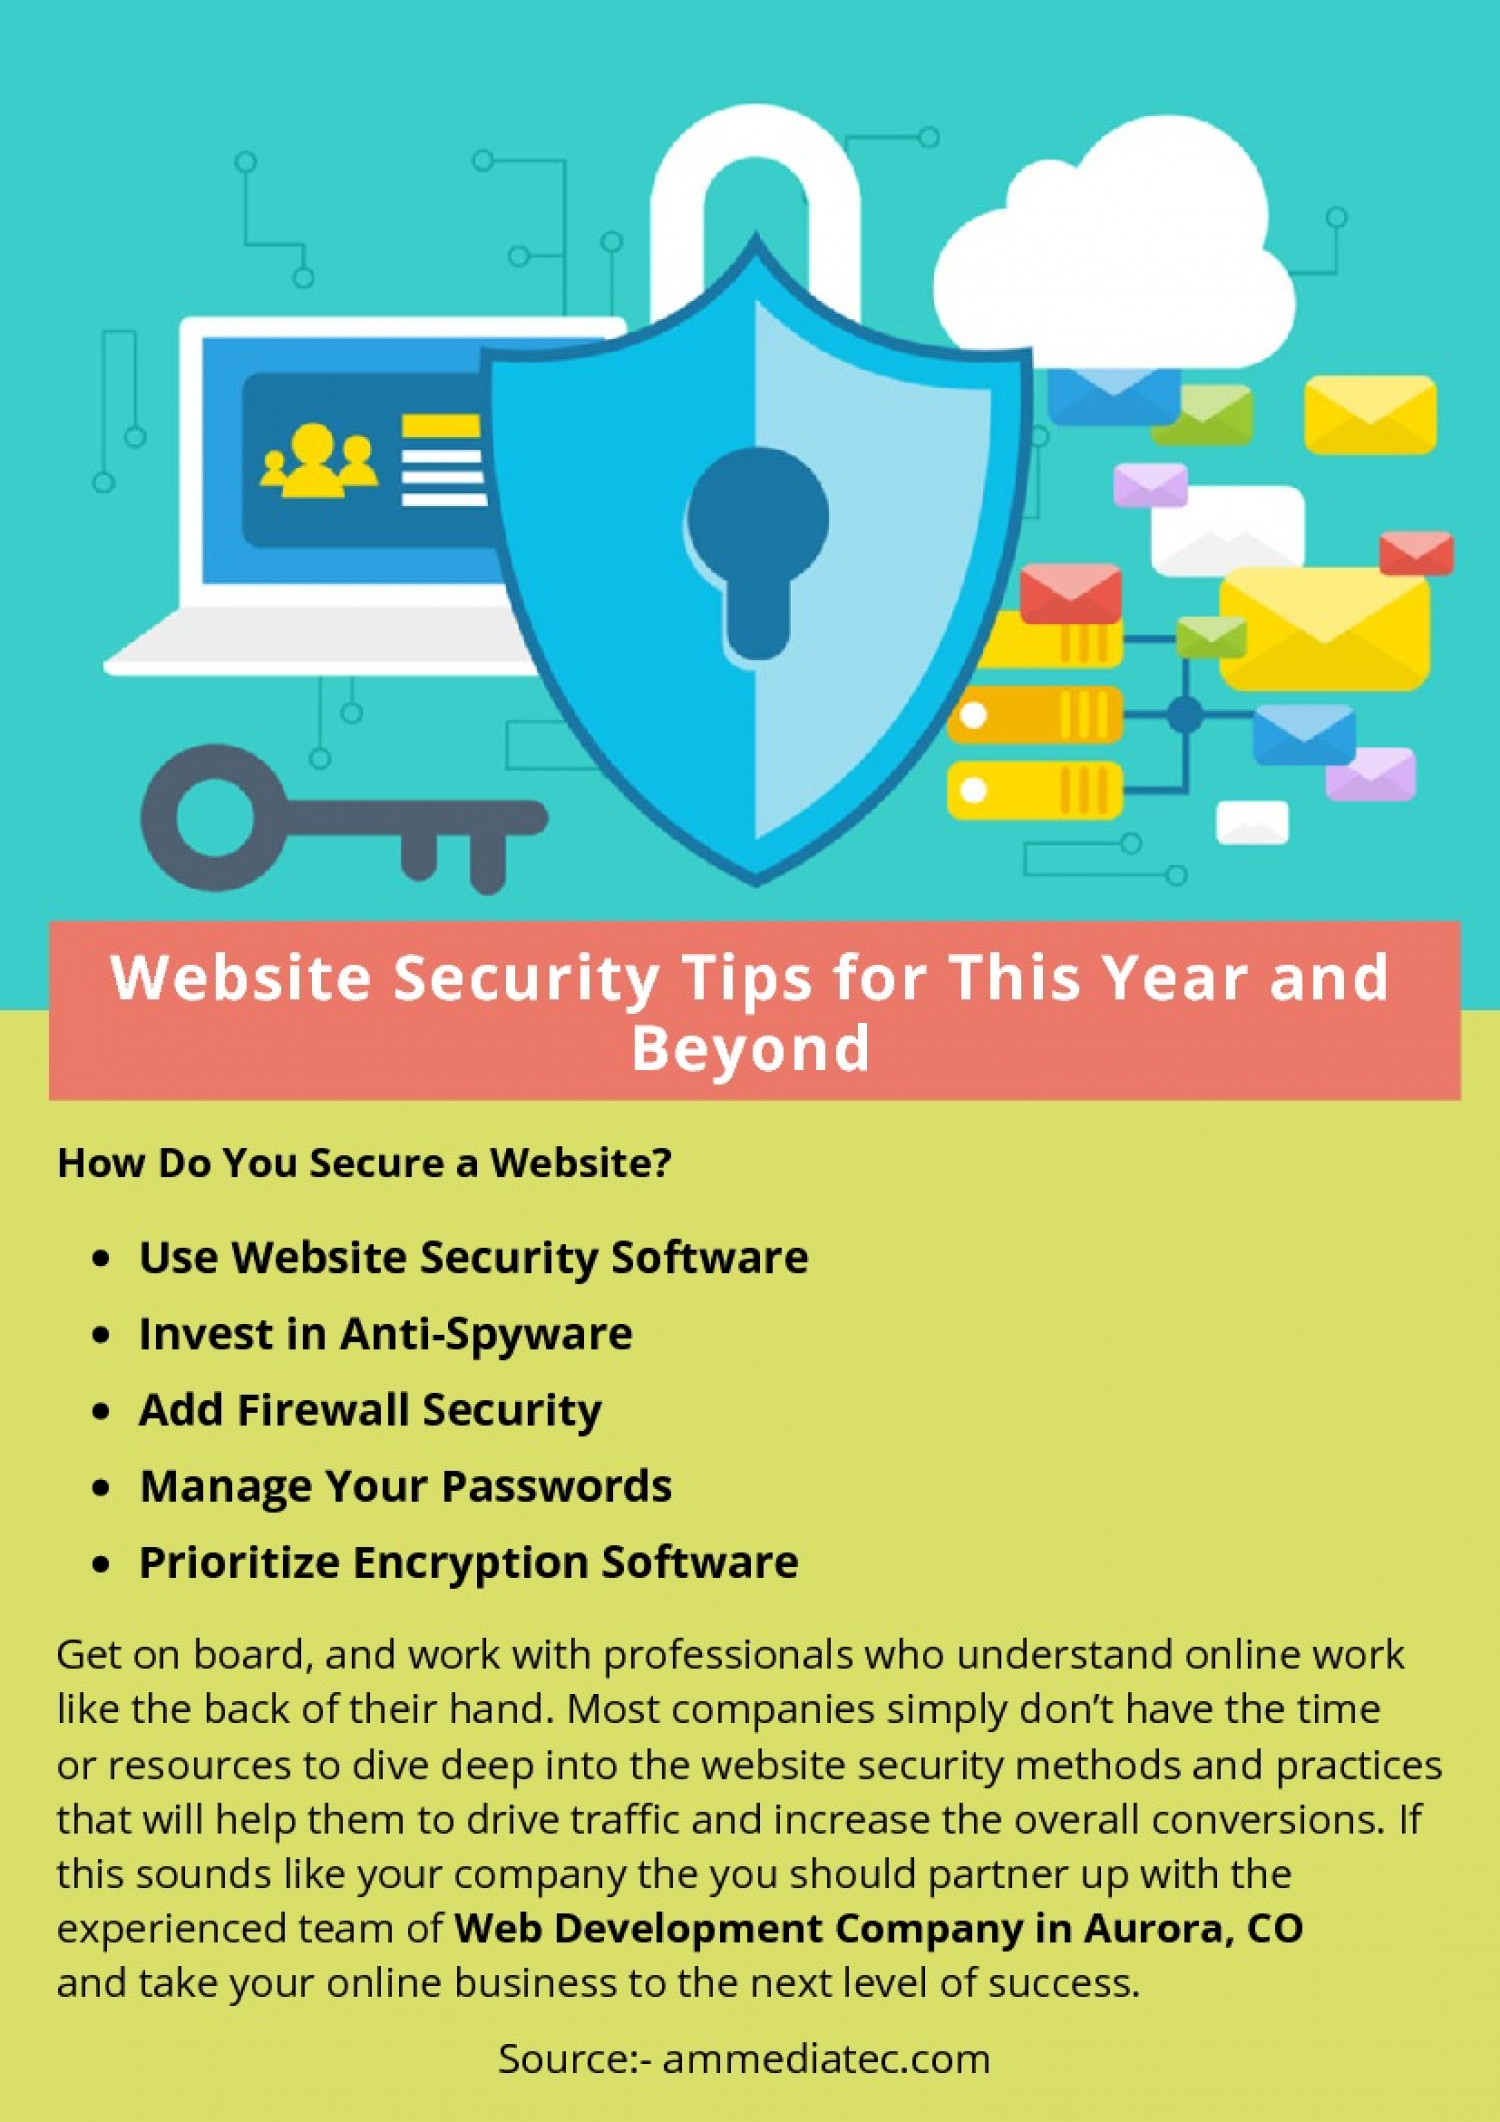 Website Security Tips for This Year and Beyond Infographic